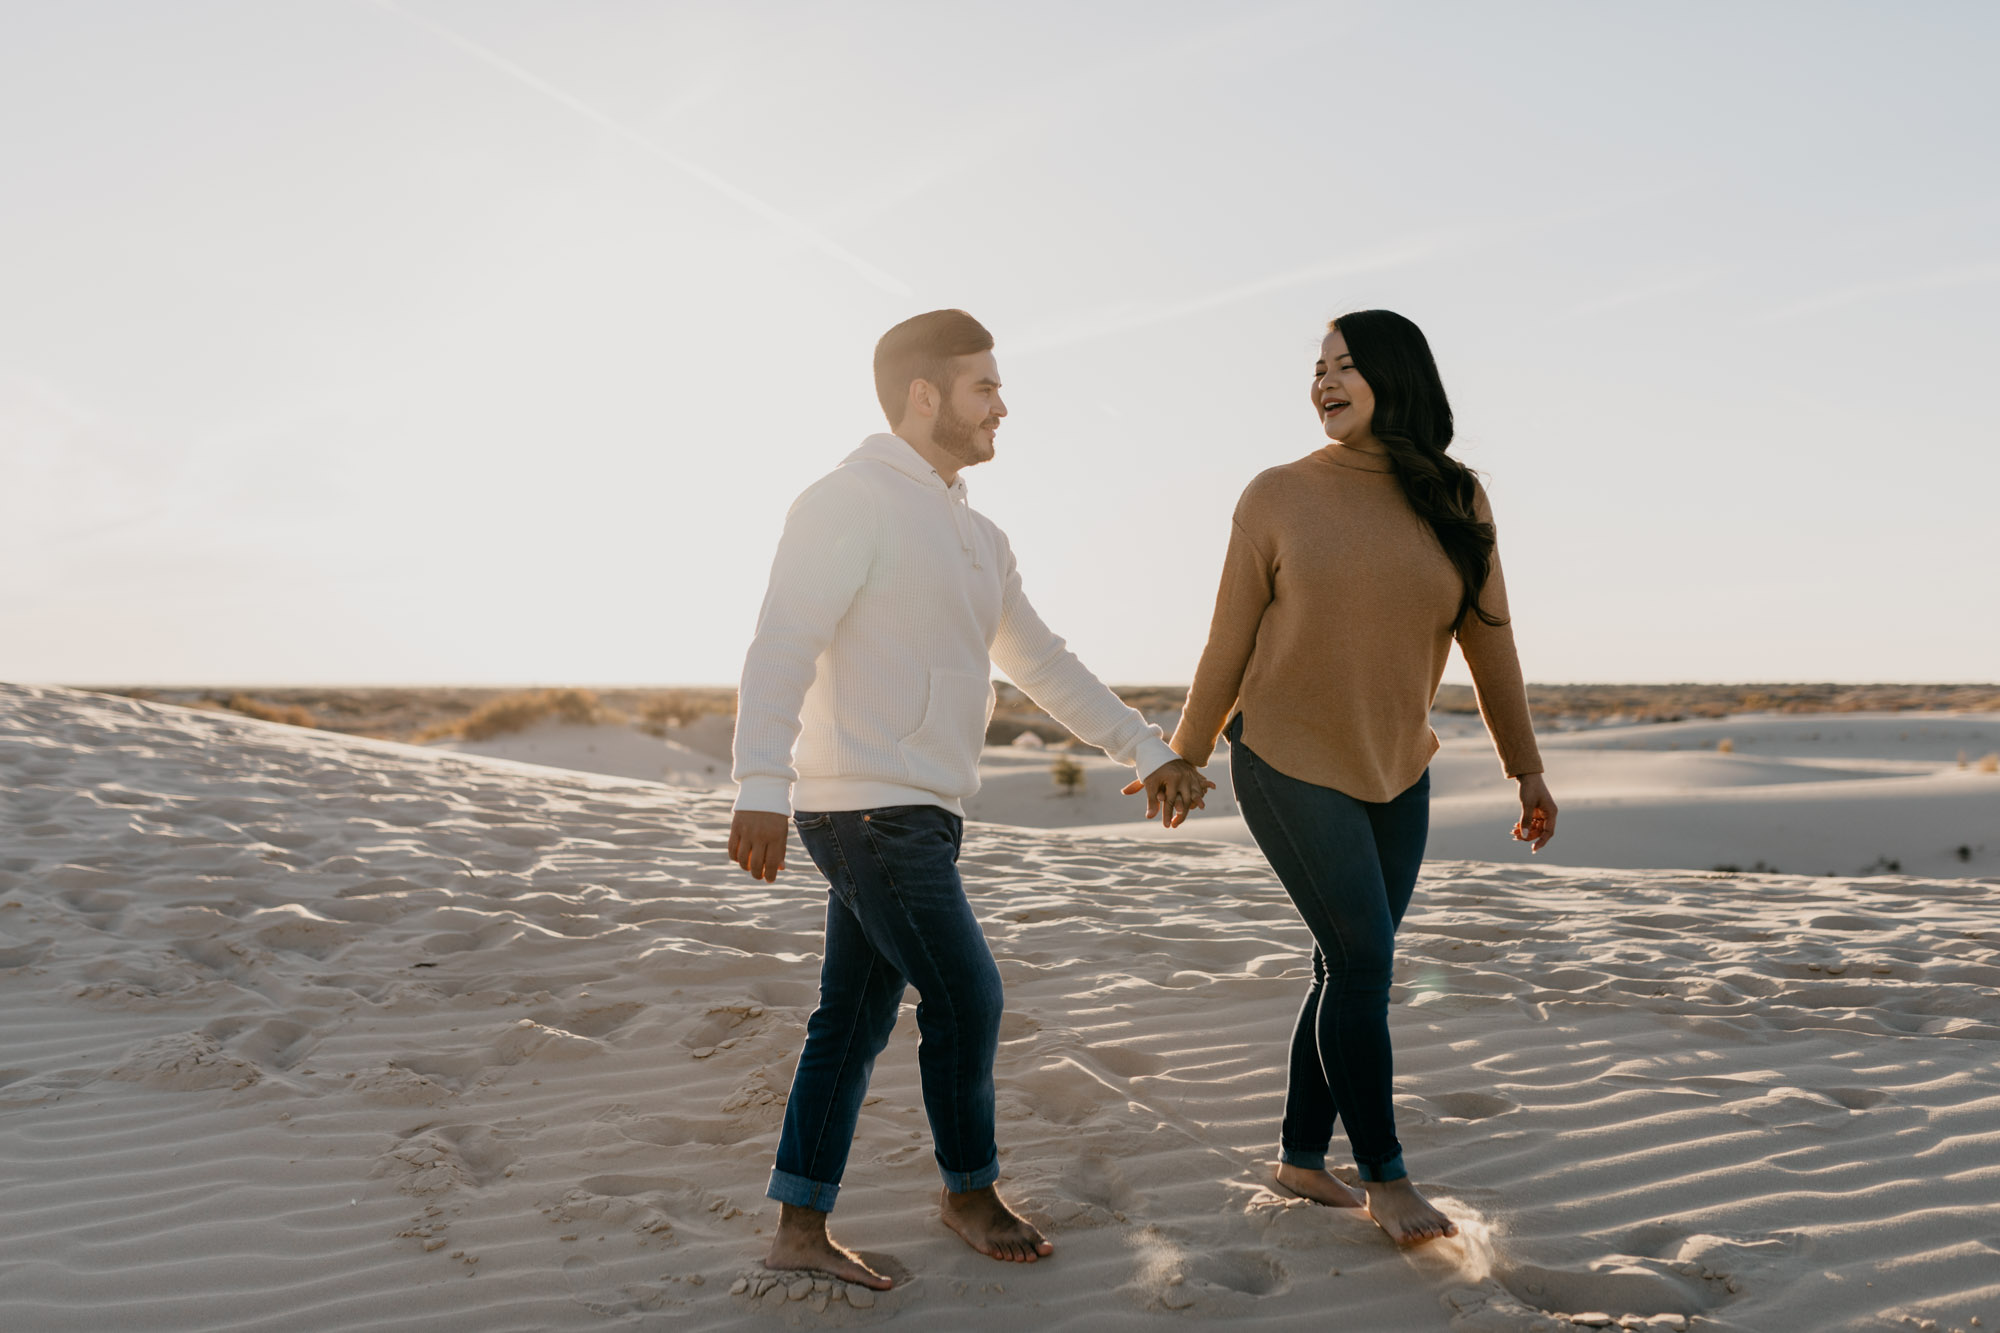 Adorable couple walking in the sand hills in west texas